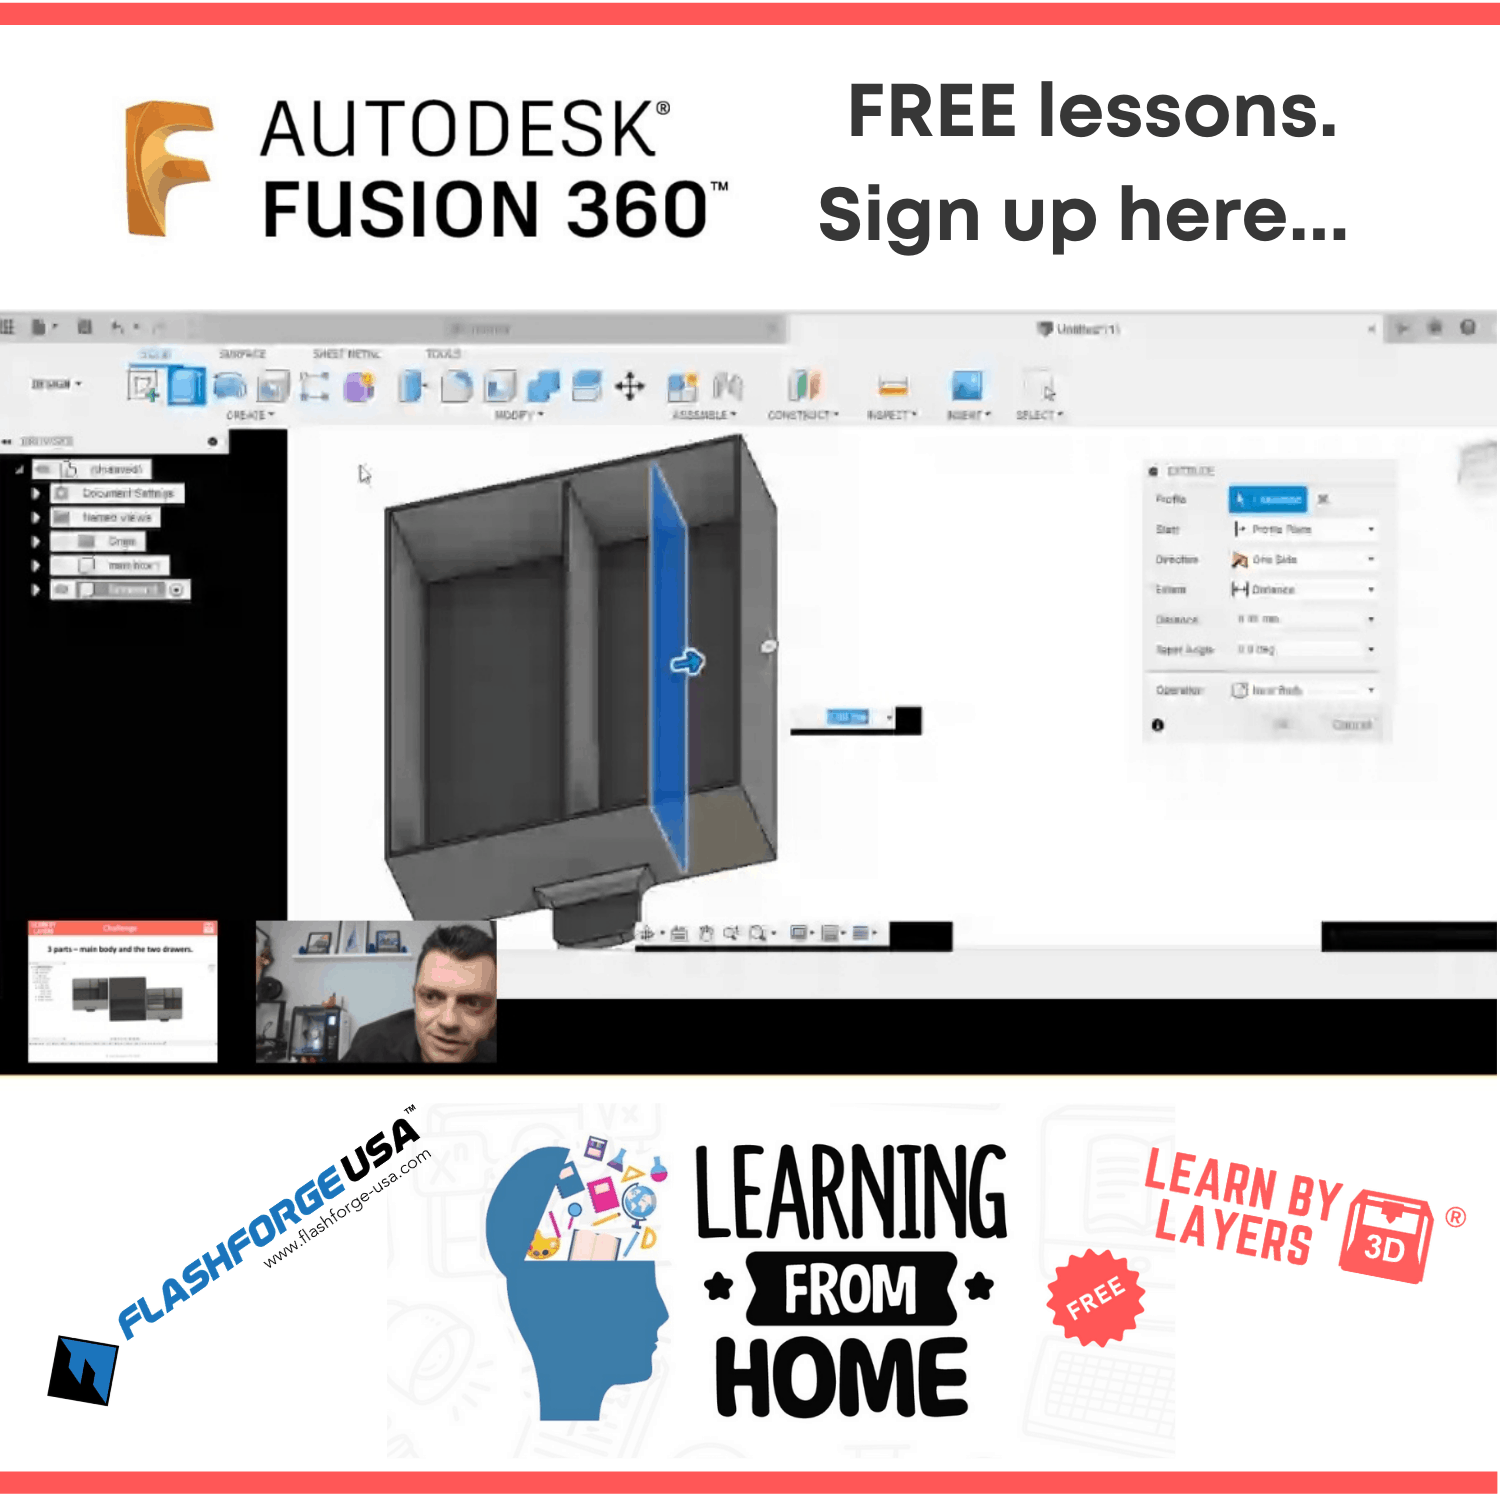 Autodesk Fusion 360 free lessons